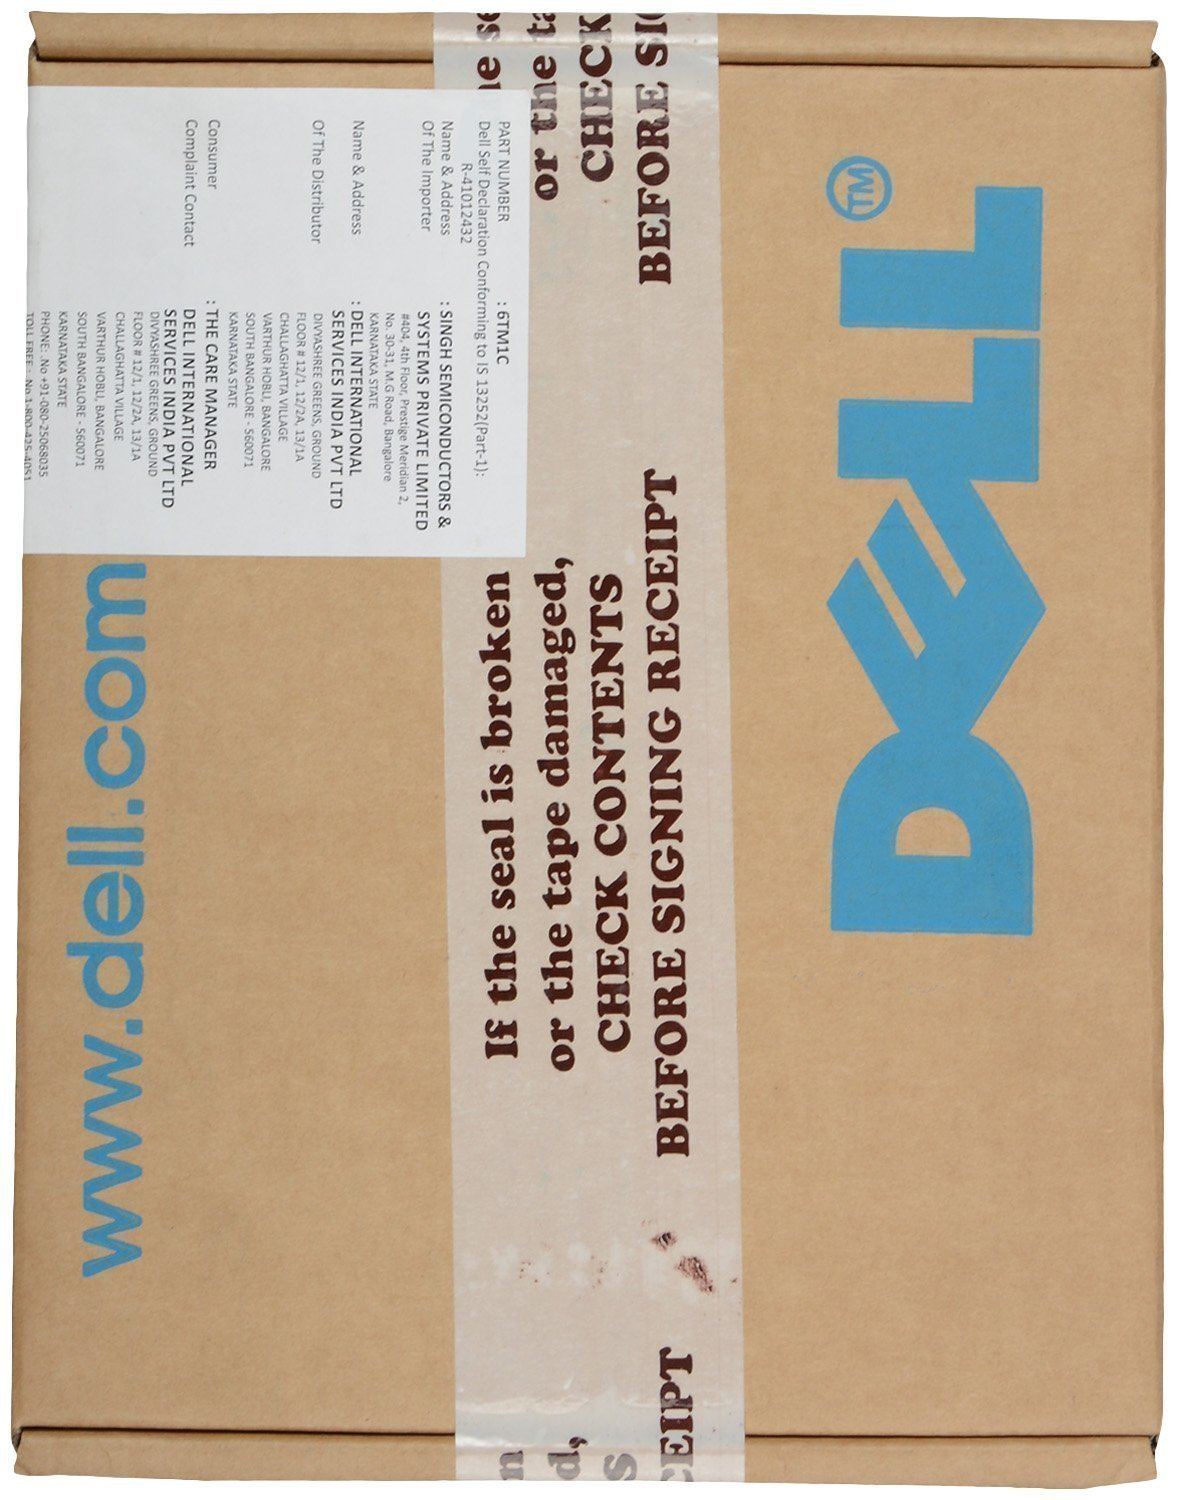 Dell 195v 334amp 65w Laptop Adapter Without Power Cord Buy Noga Indicator Guard Online At Low Price In India